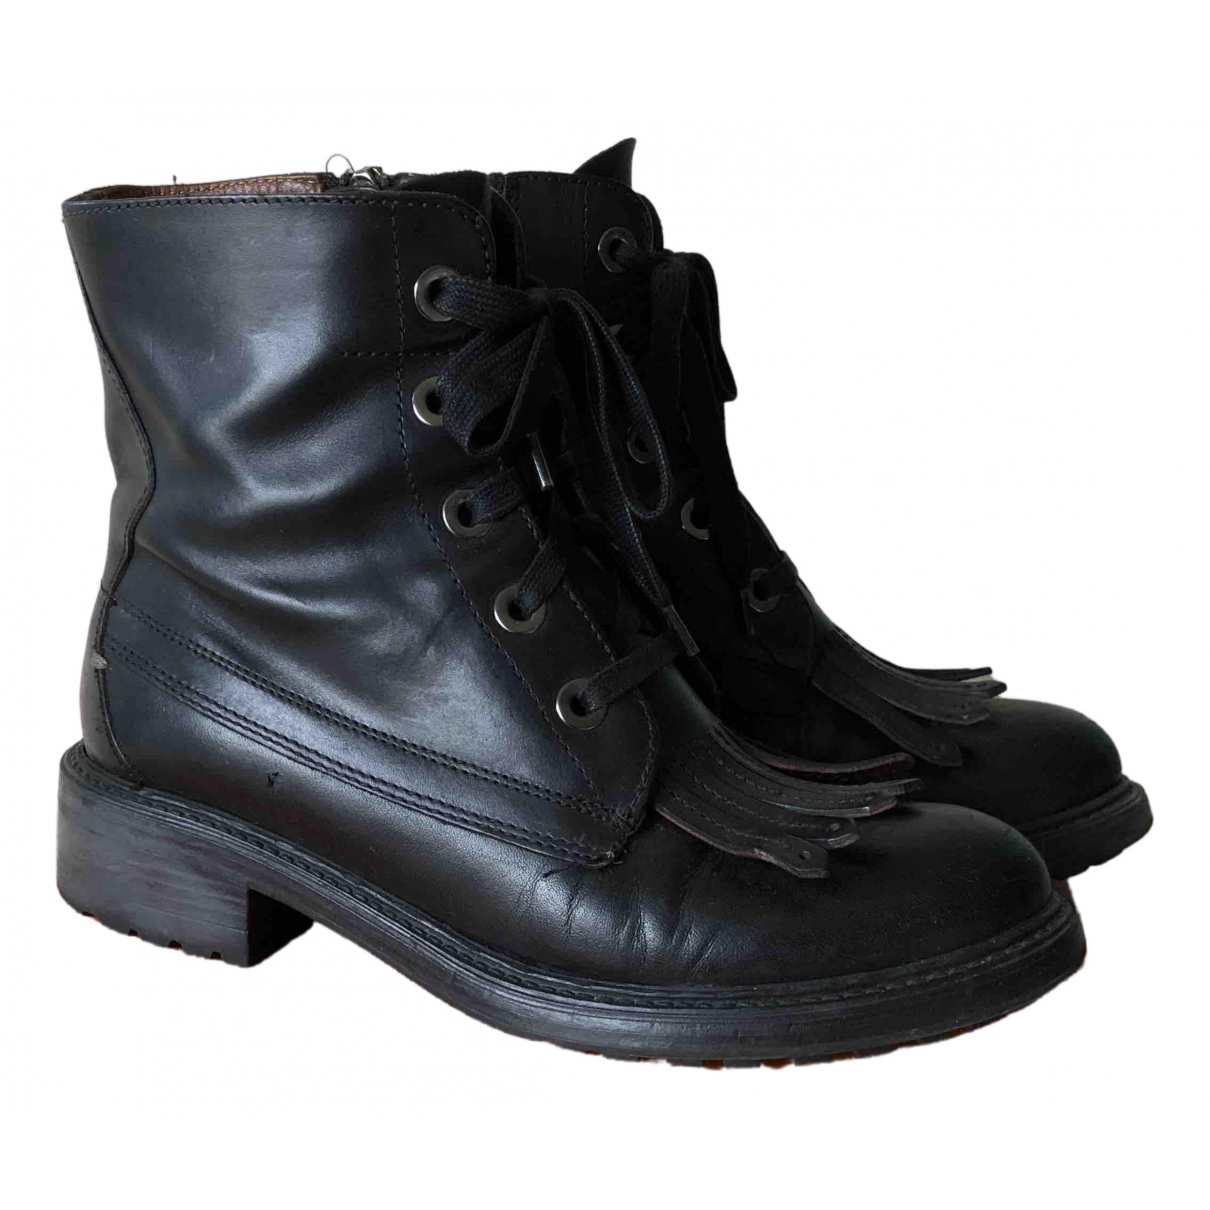 Boss N Black Leather Boots for Women 36.5 EU